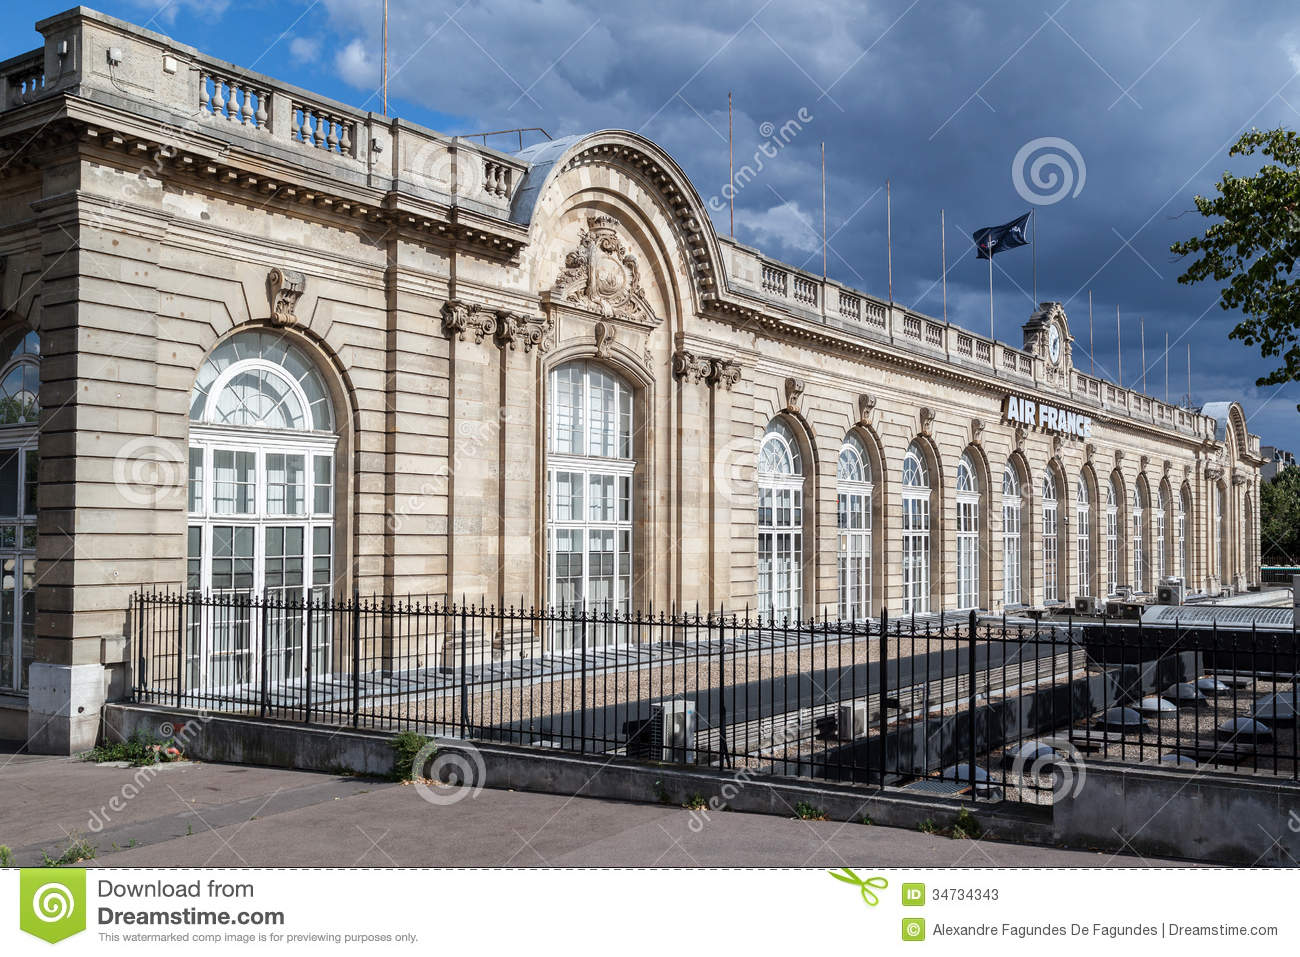 air france building paris france editorial stock photo image 34734343. Black Bedroom Furniture Sets. Home Design Ideas